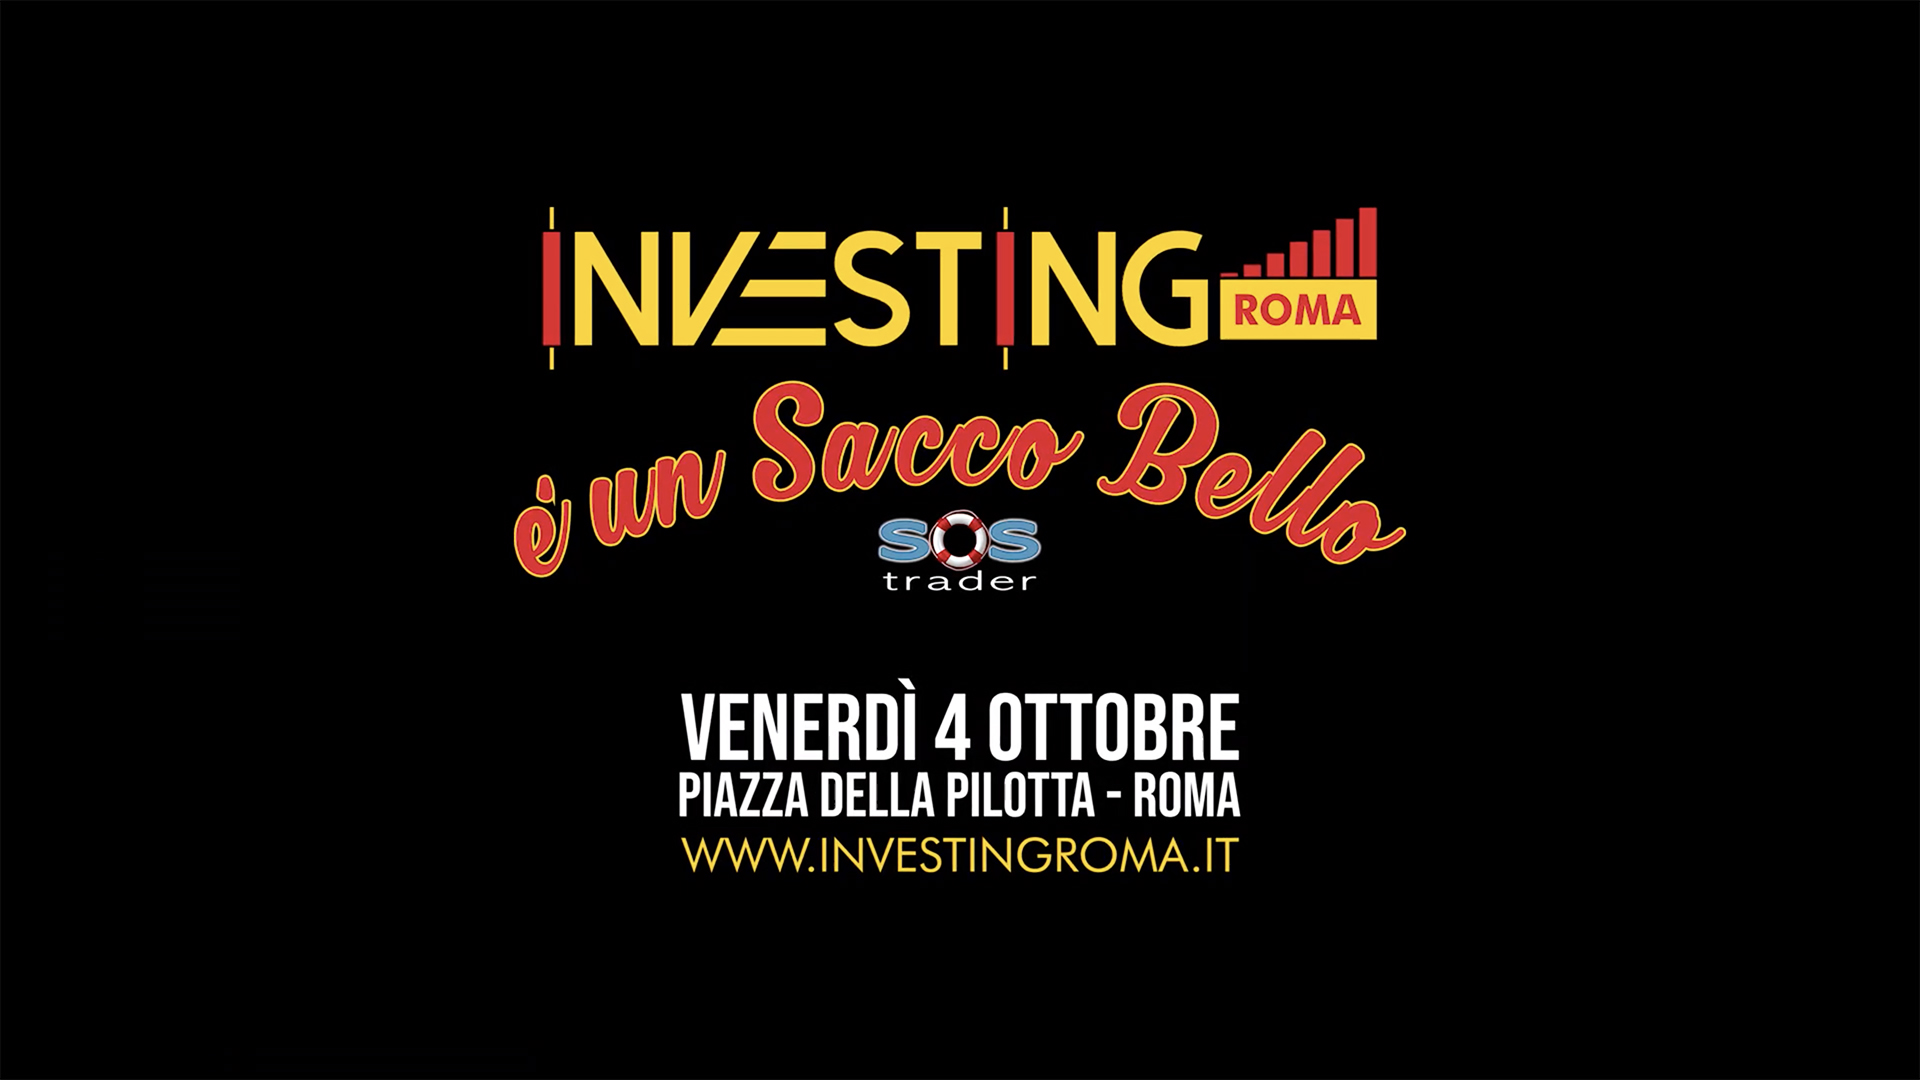 investing roma un sacco bello